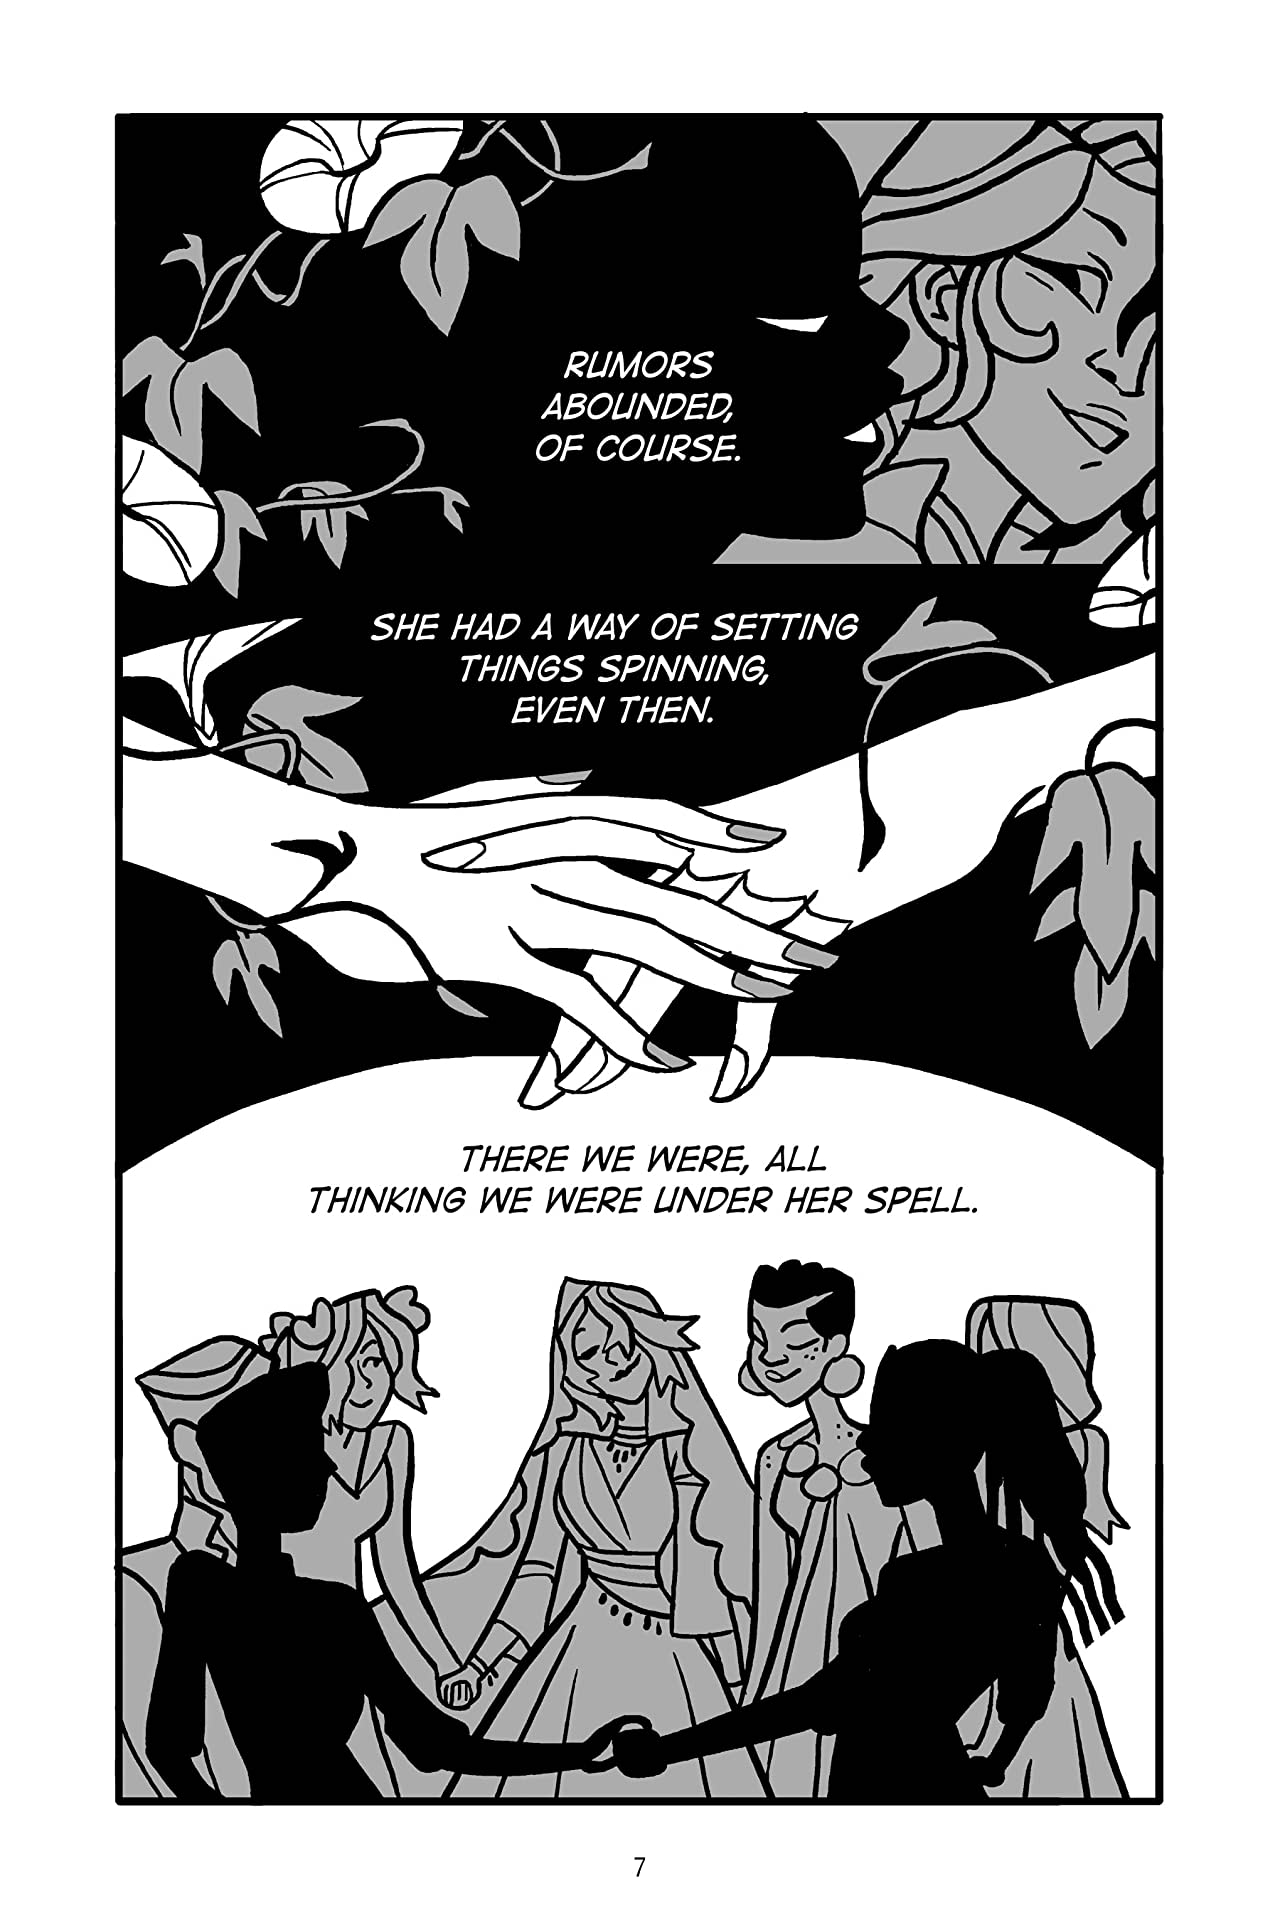 Power & Magic: The Queer Witch Comics Anthology Vol. 1